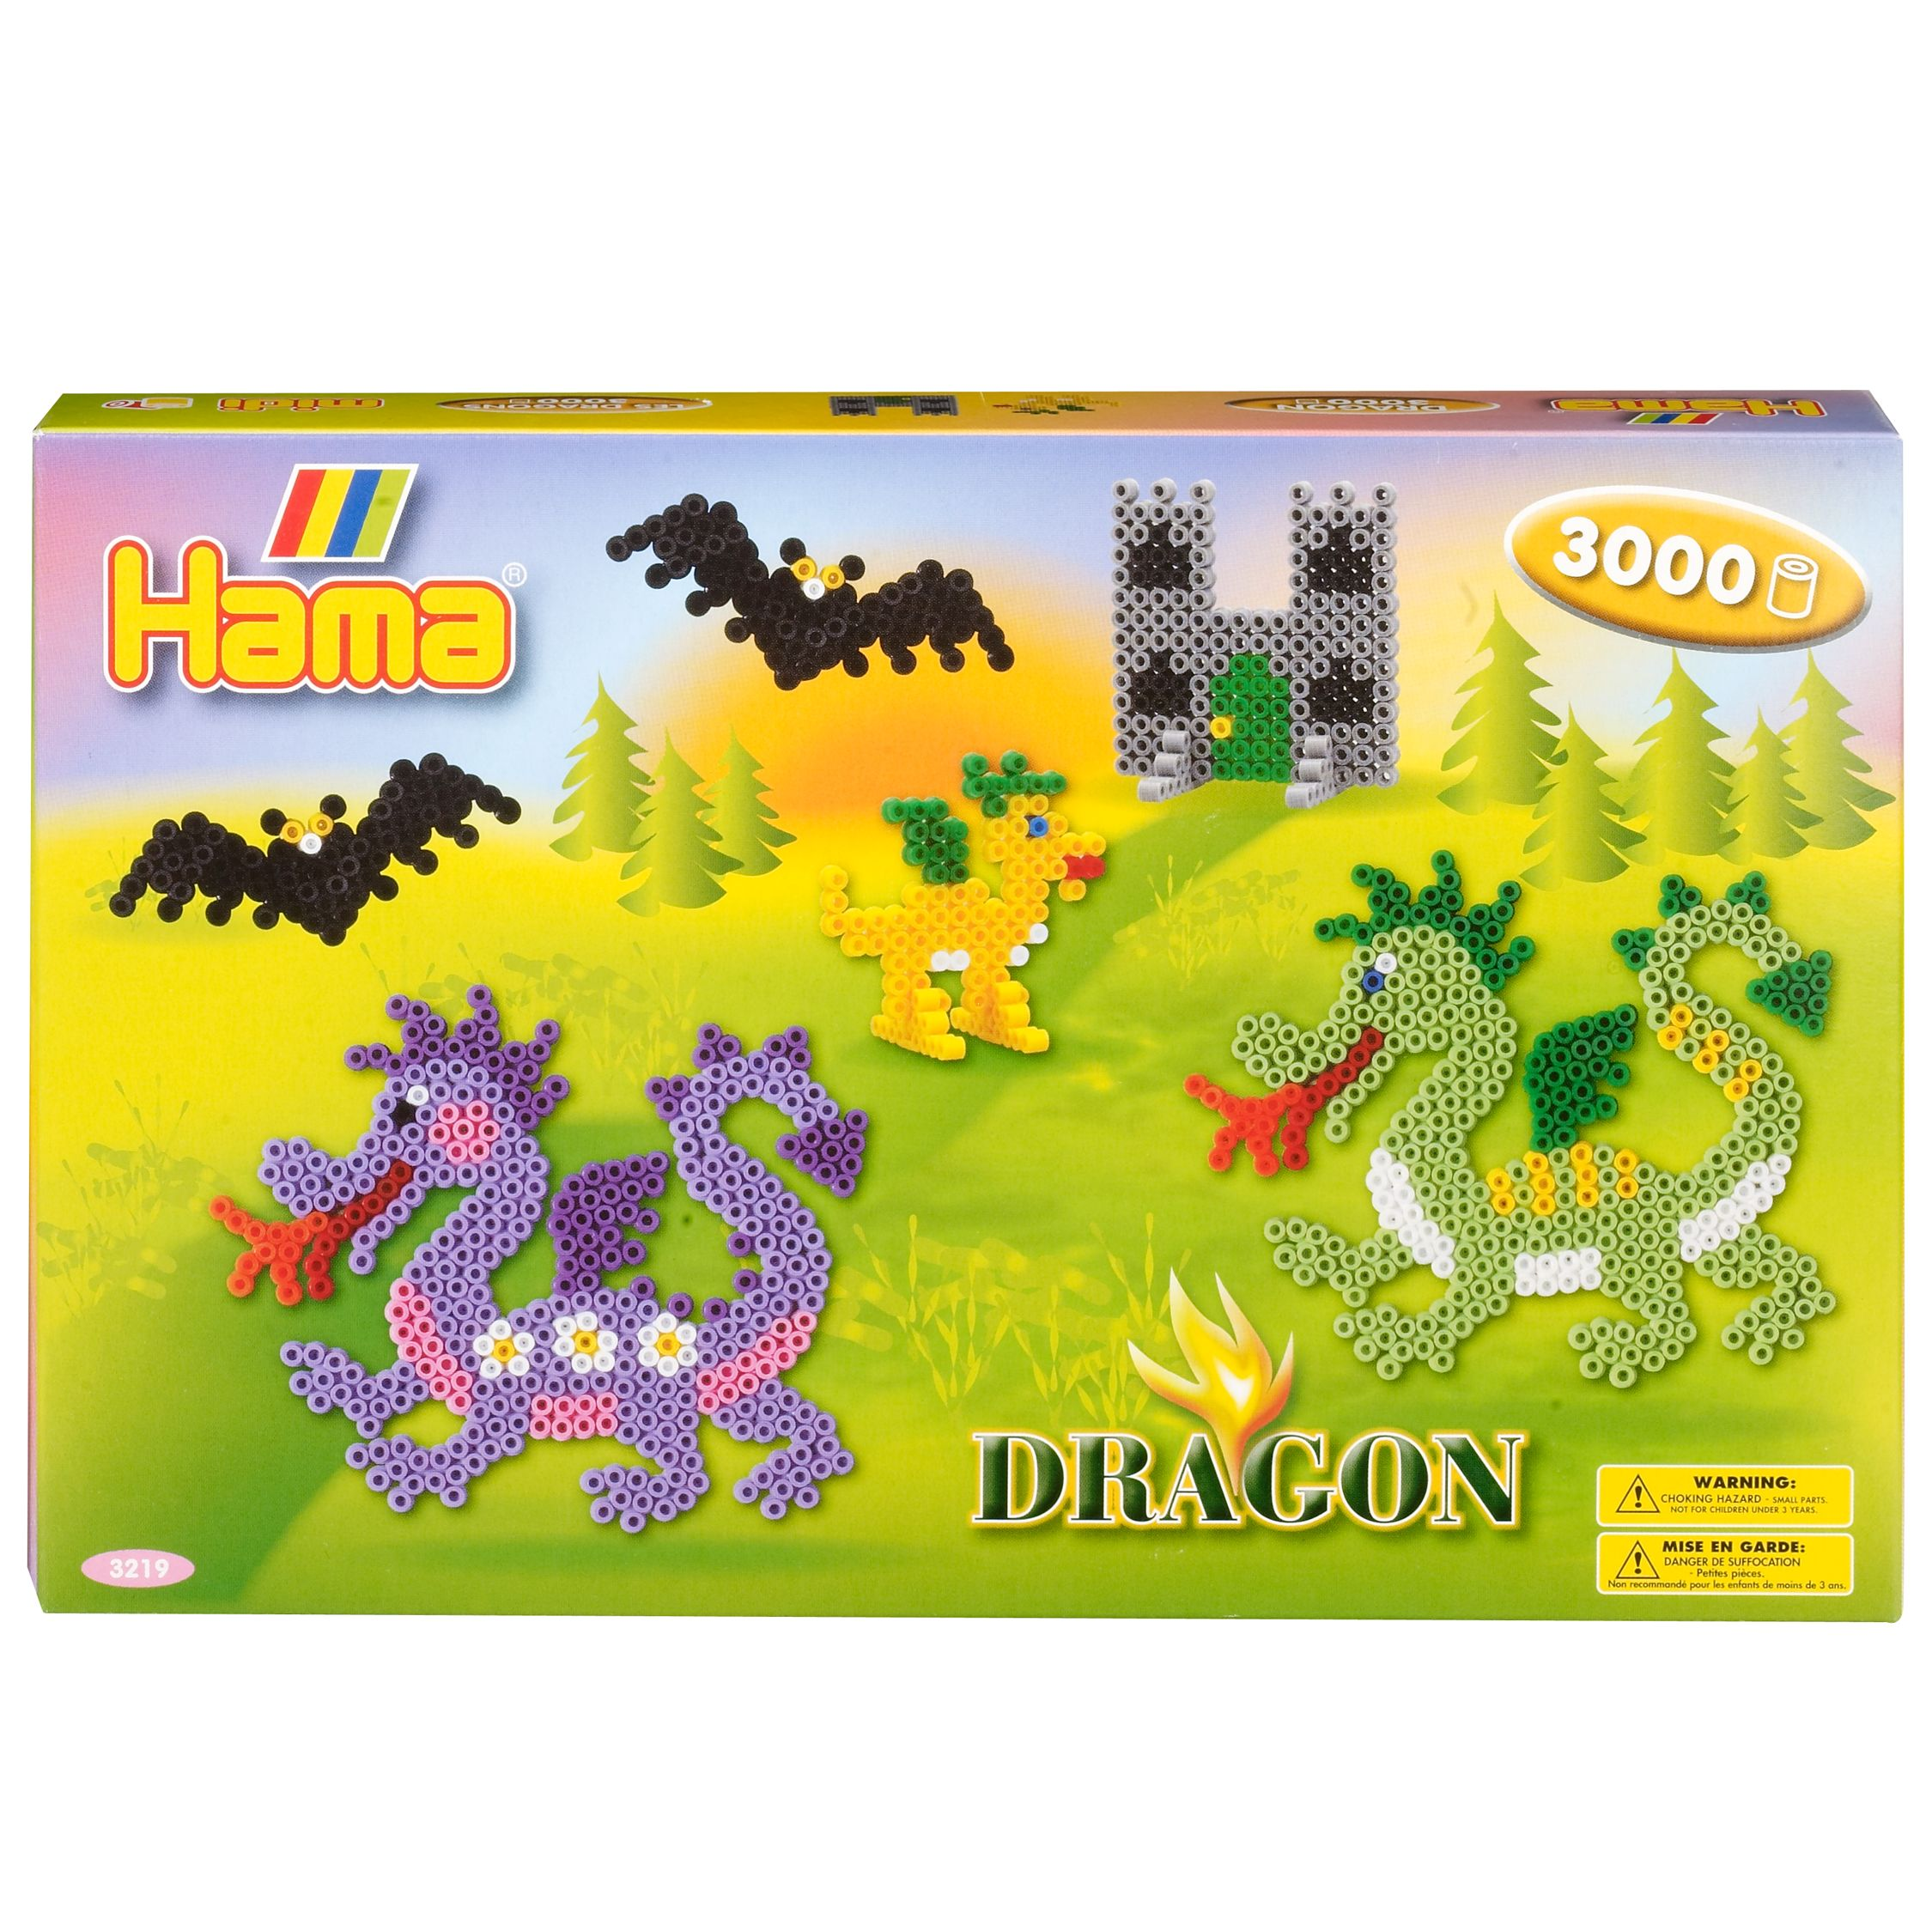 Hama Dragon Kits, 3000 Beads